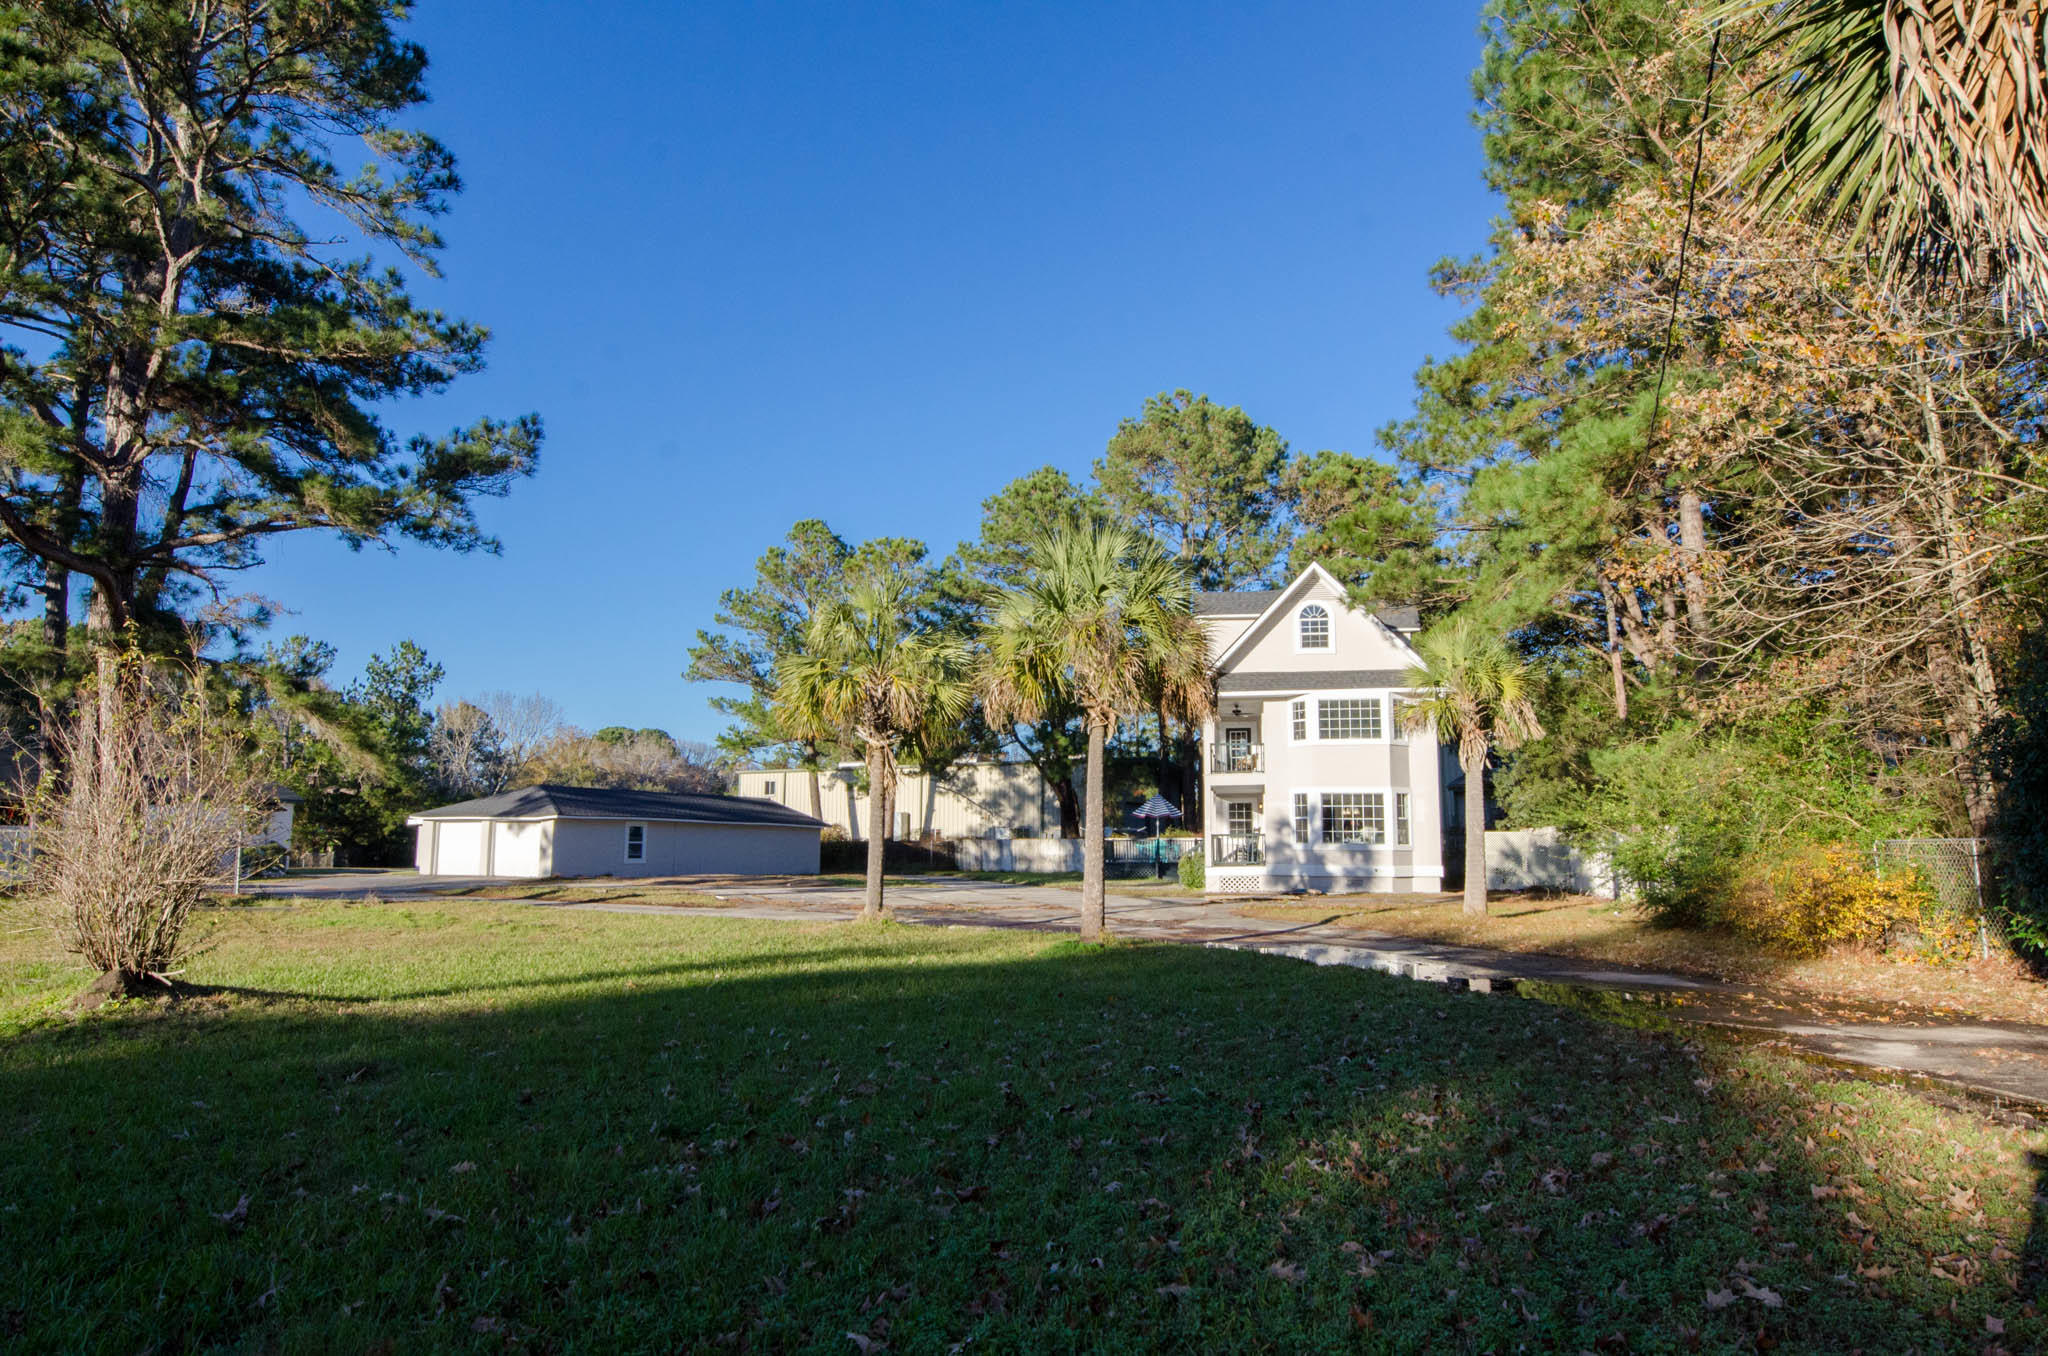 1564 Highway 41 Mount Pleasant, SC 29466